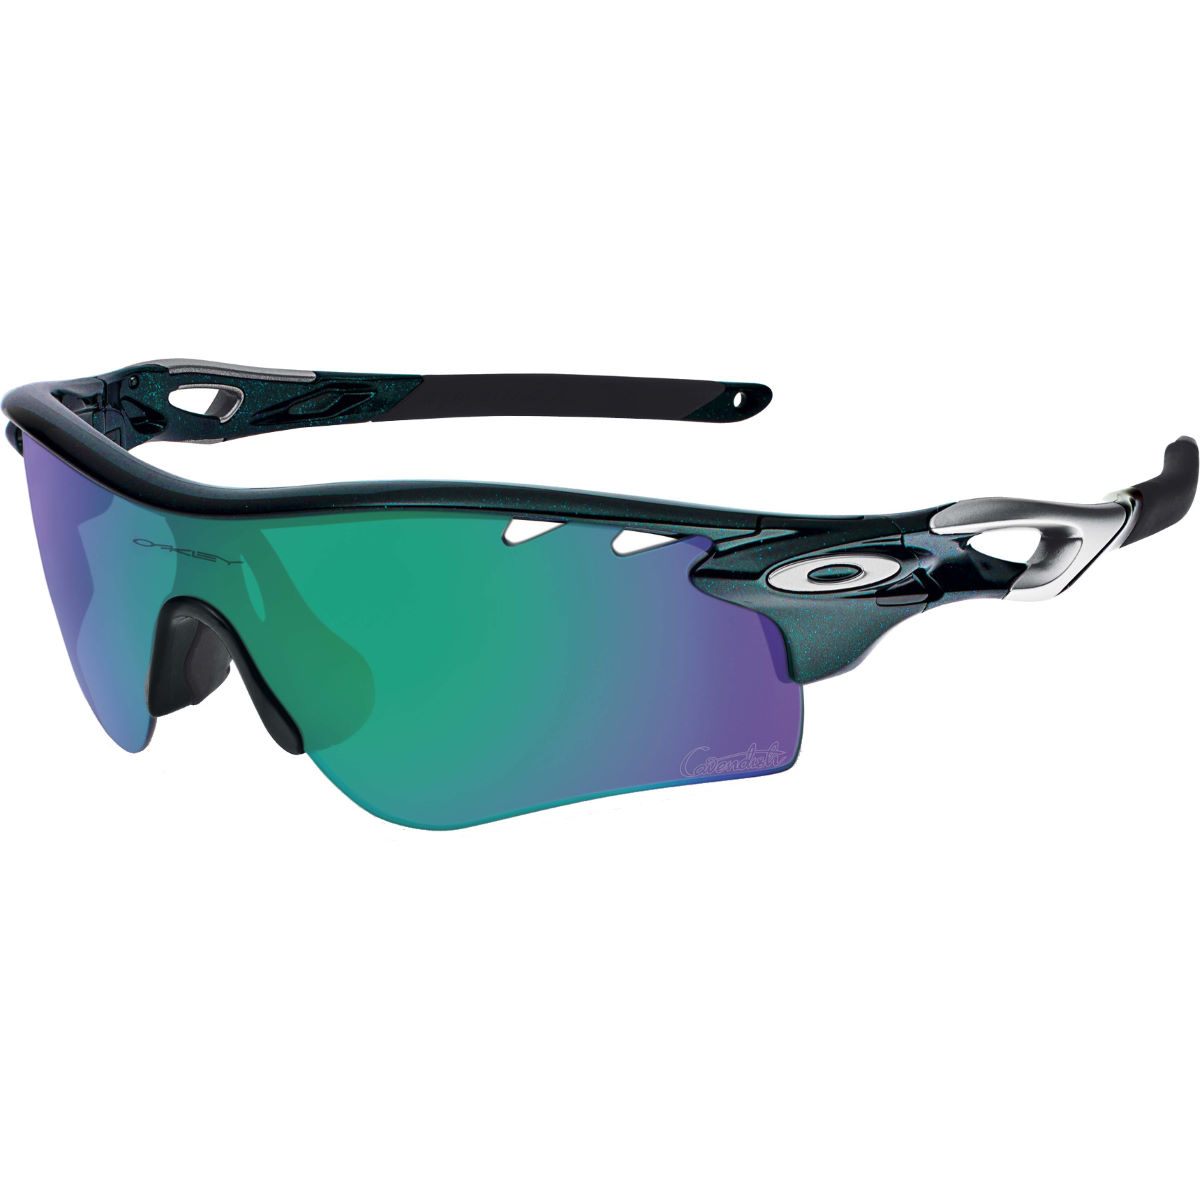 Oakley Mark Cavendish Radarlock Sunglasses - 2013